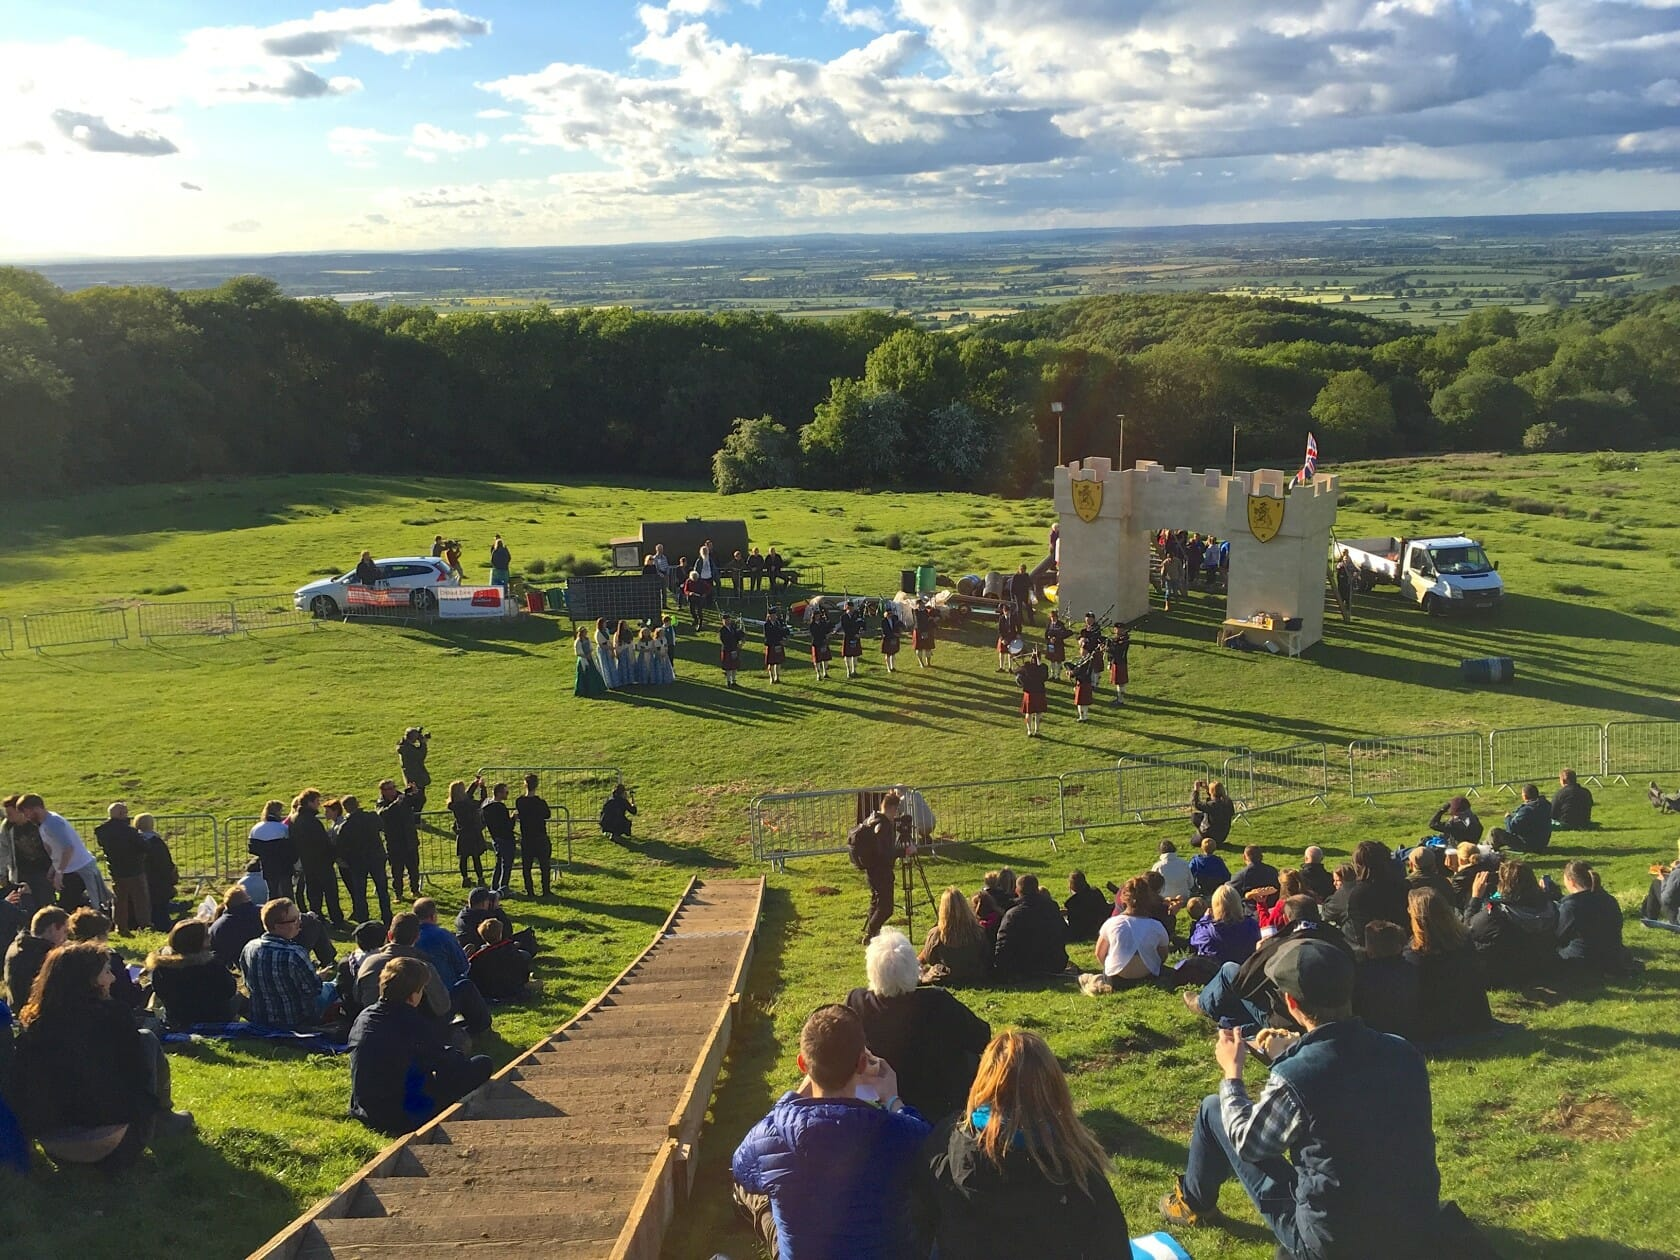 Cotswold Olimpicks dover games england shin kicking competition